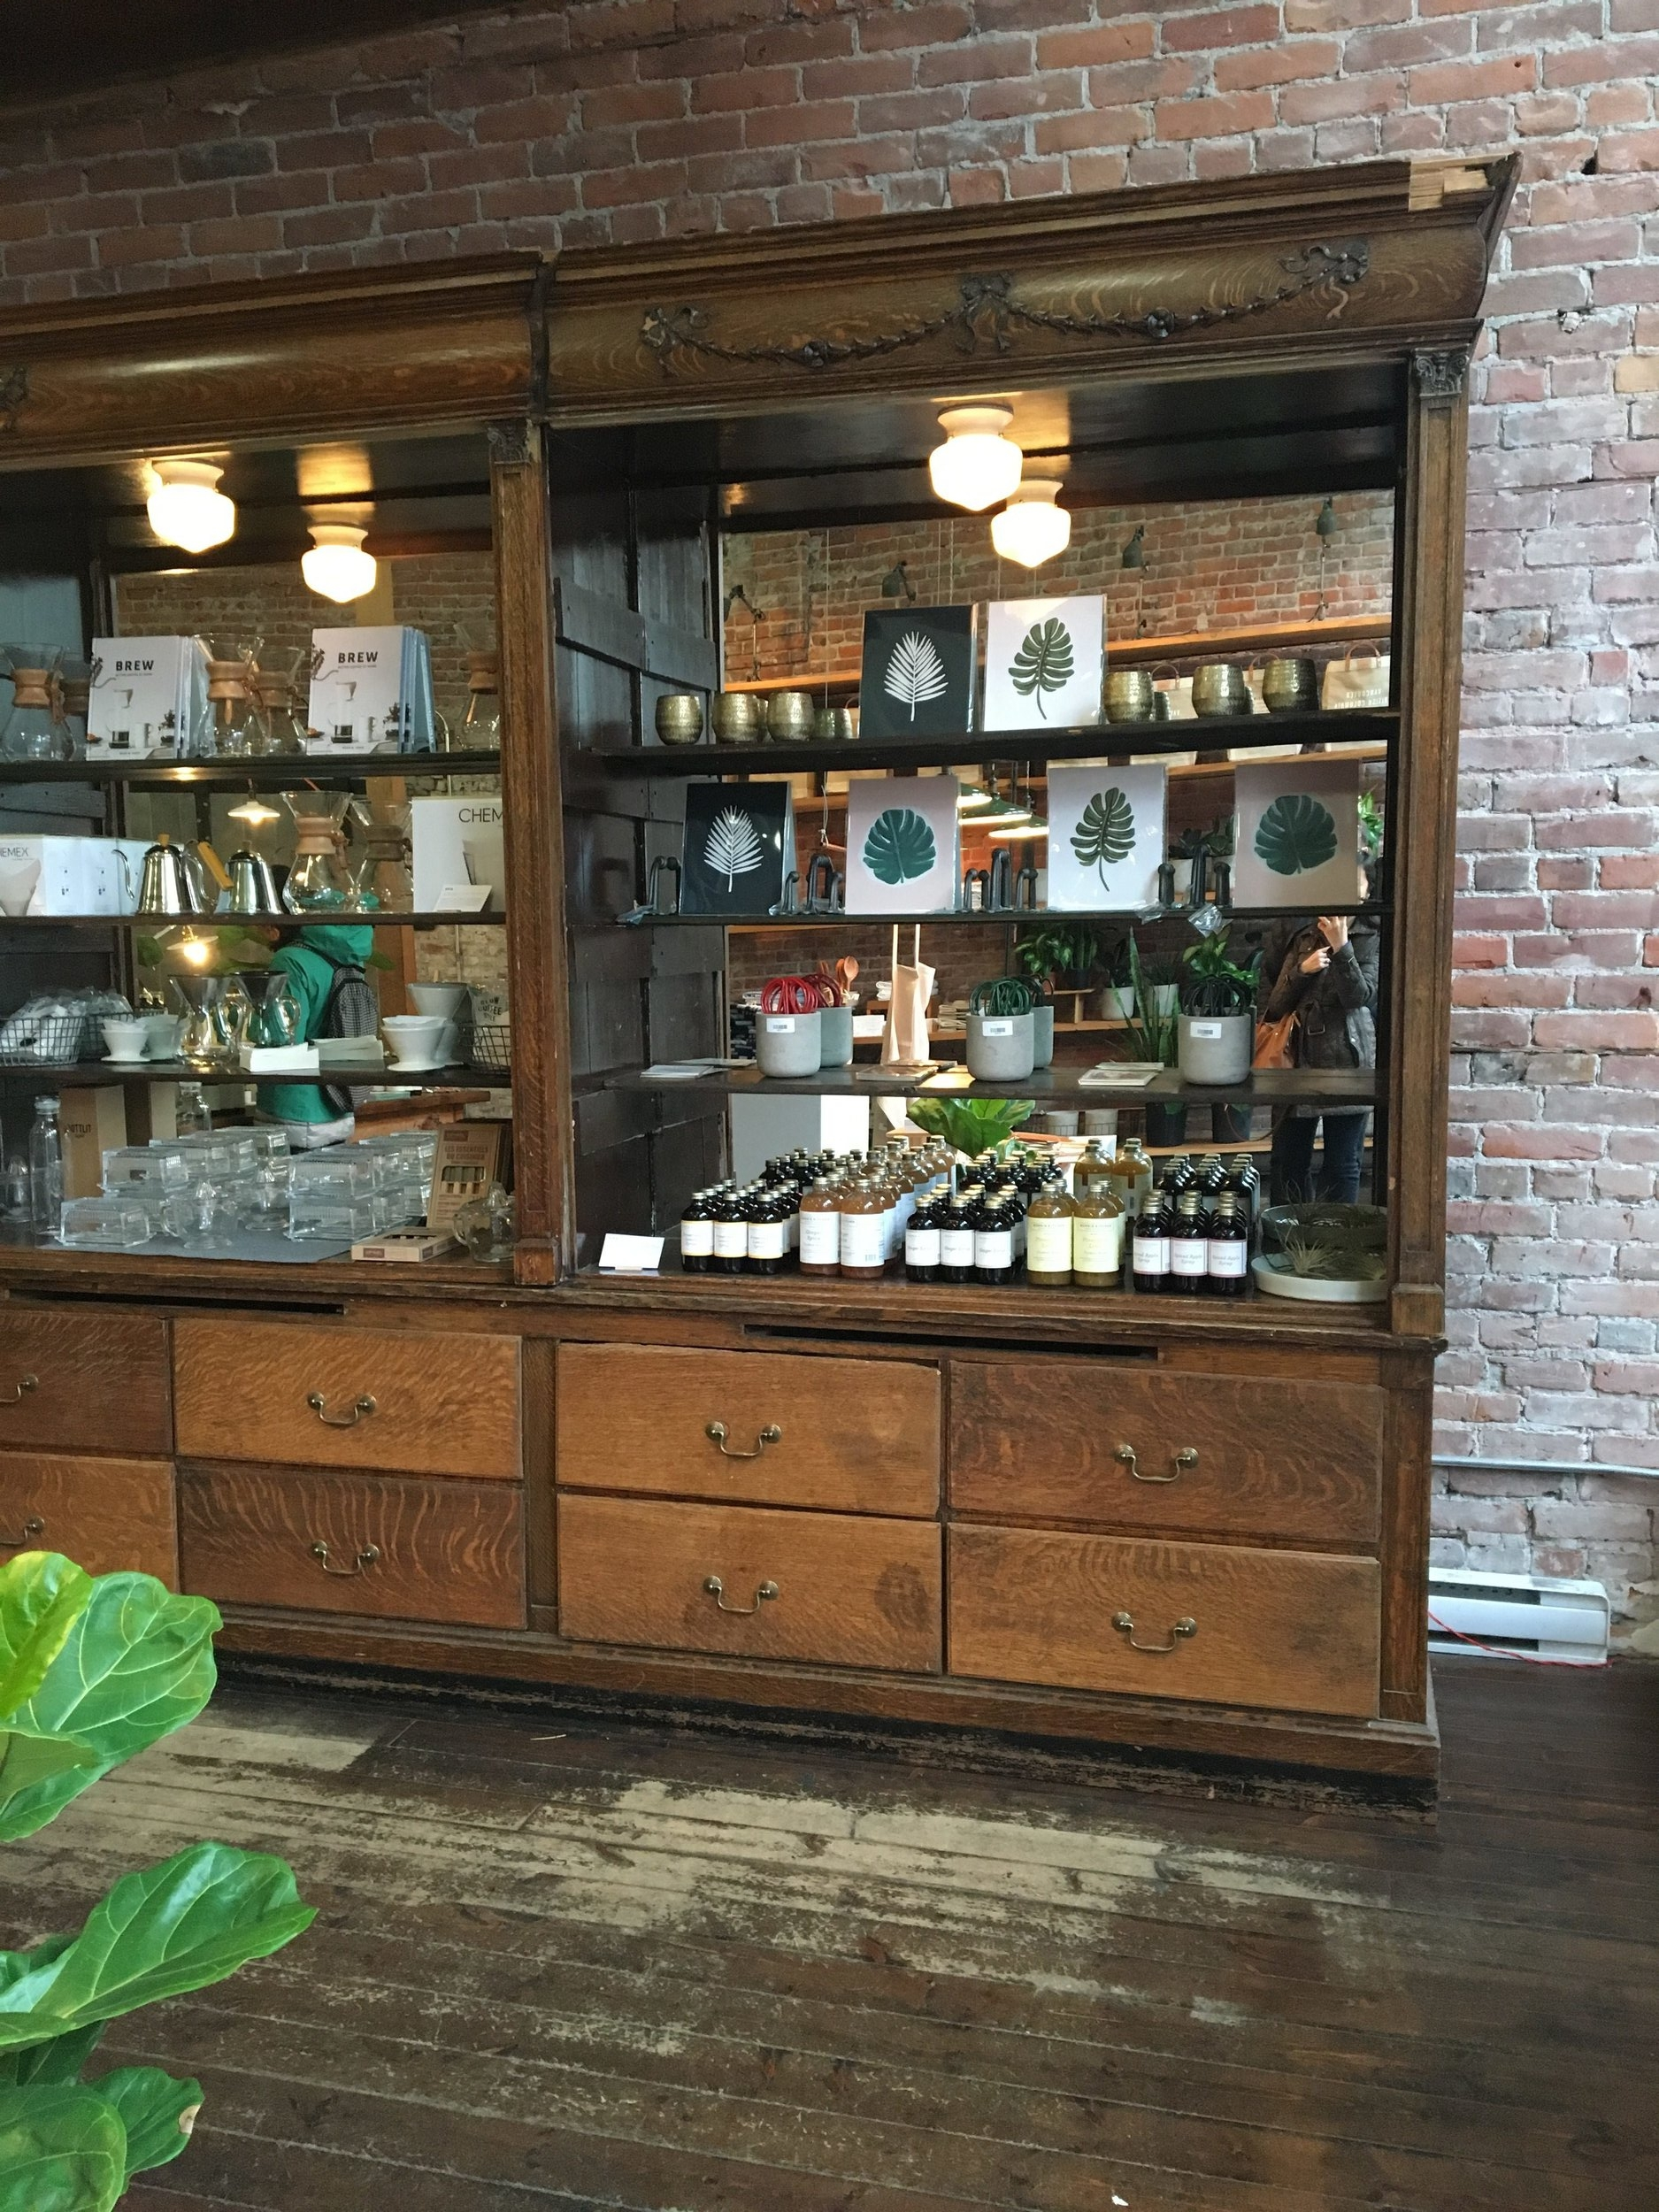 There were so many cute shops we popped into along the way. One being  Old Faithful Shop  in the Gastown neighborhood. Think of this as a general store, filled with beautifully curated wares and goods.